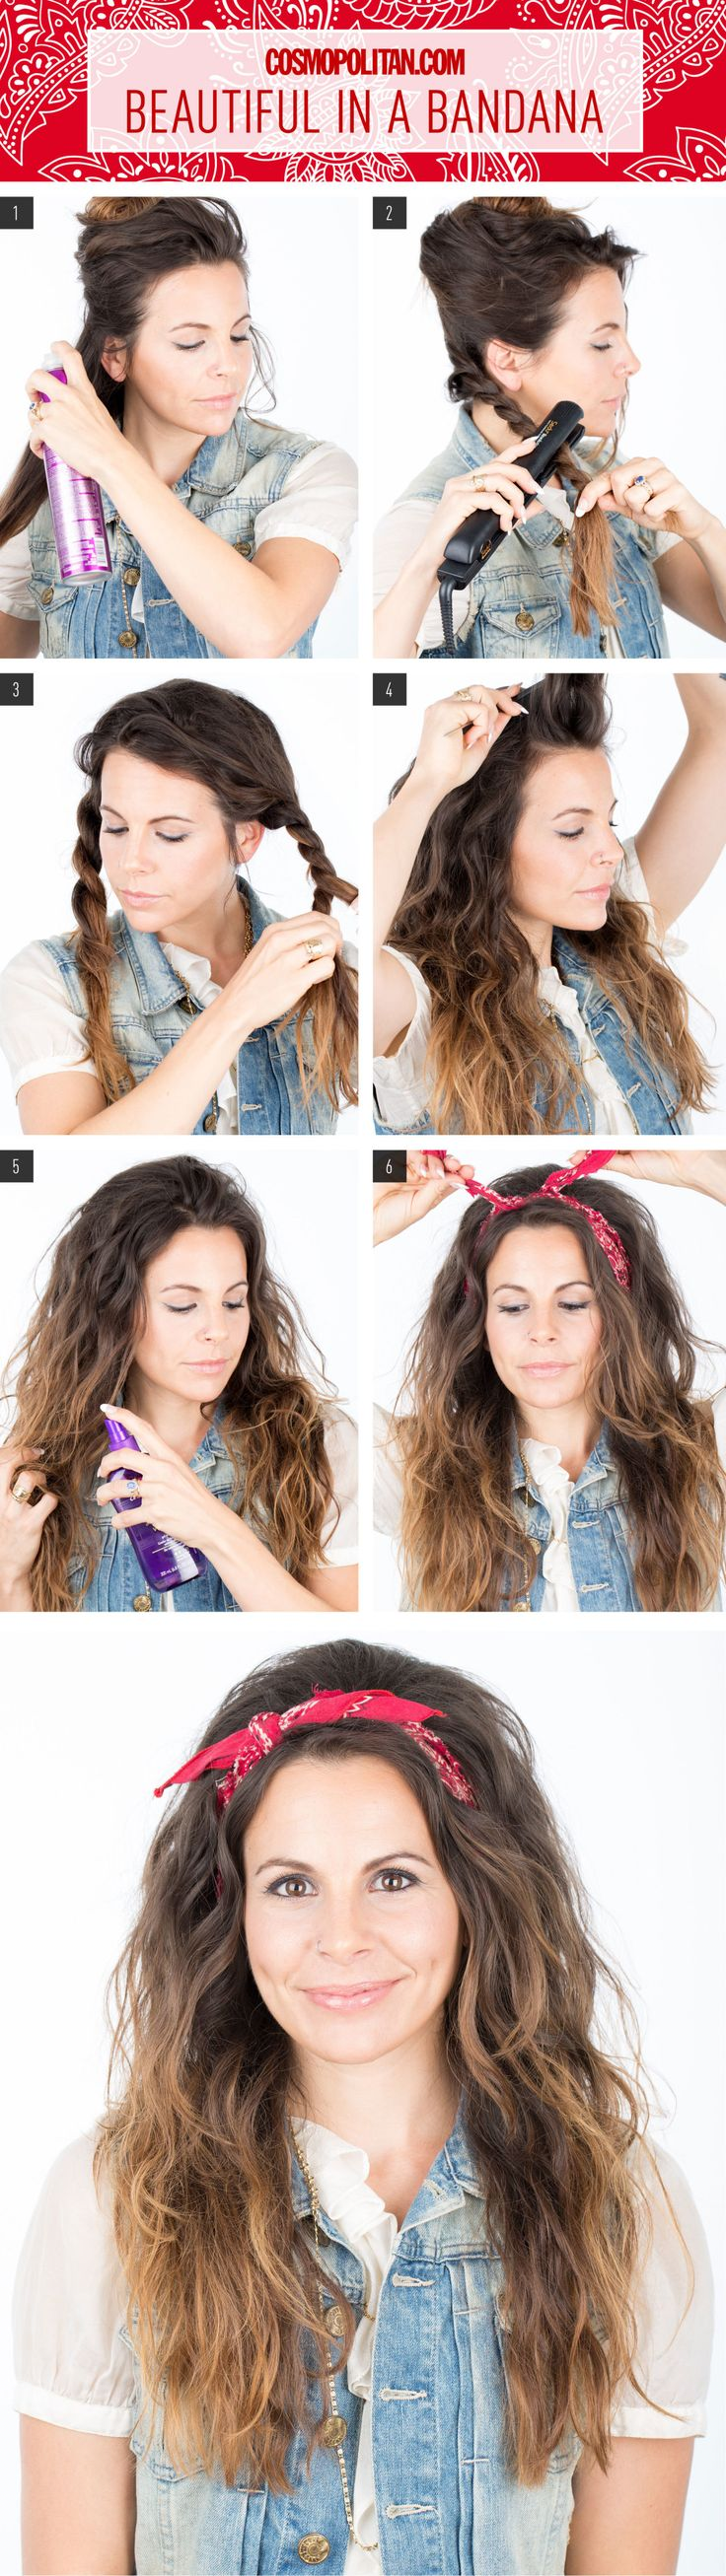 Hair How-To: Look Beautiful in a Bandana